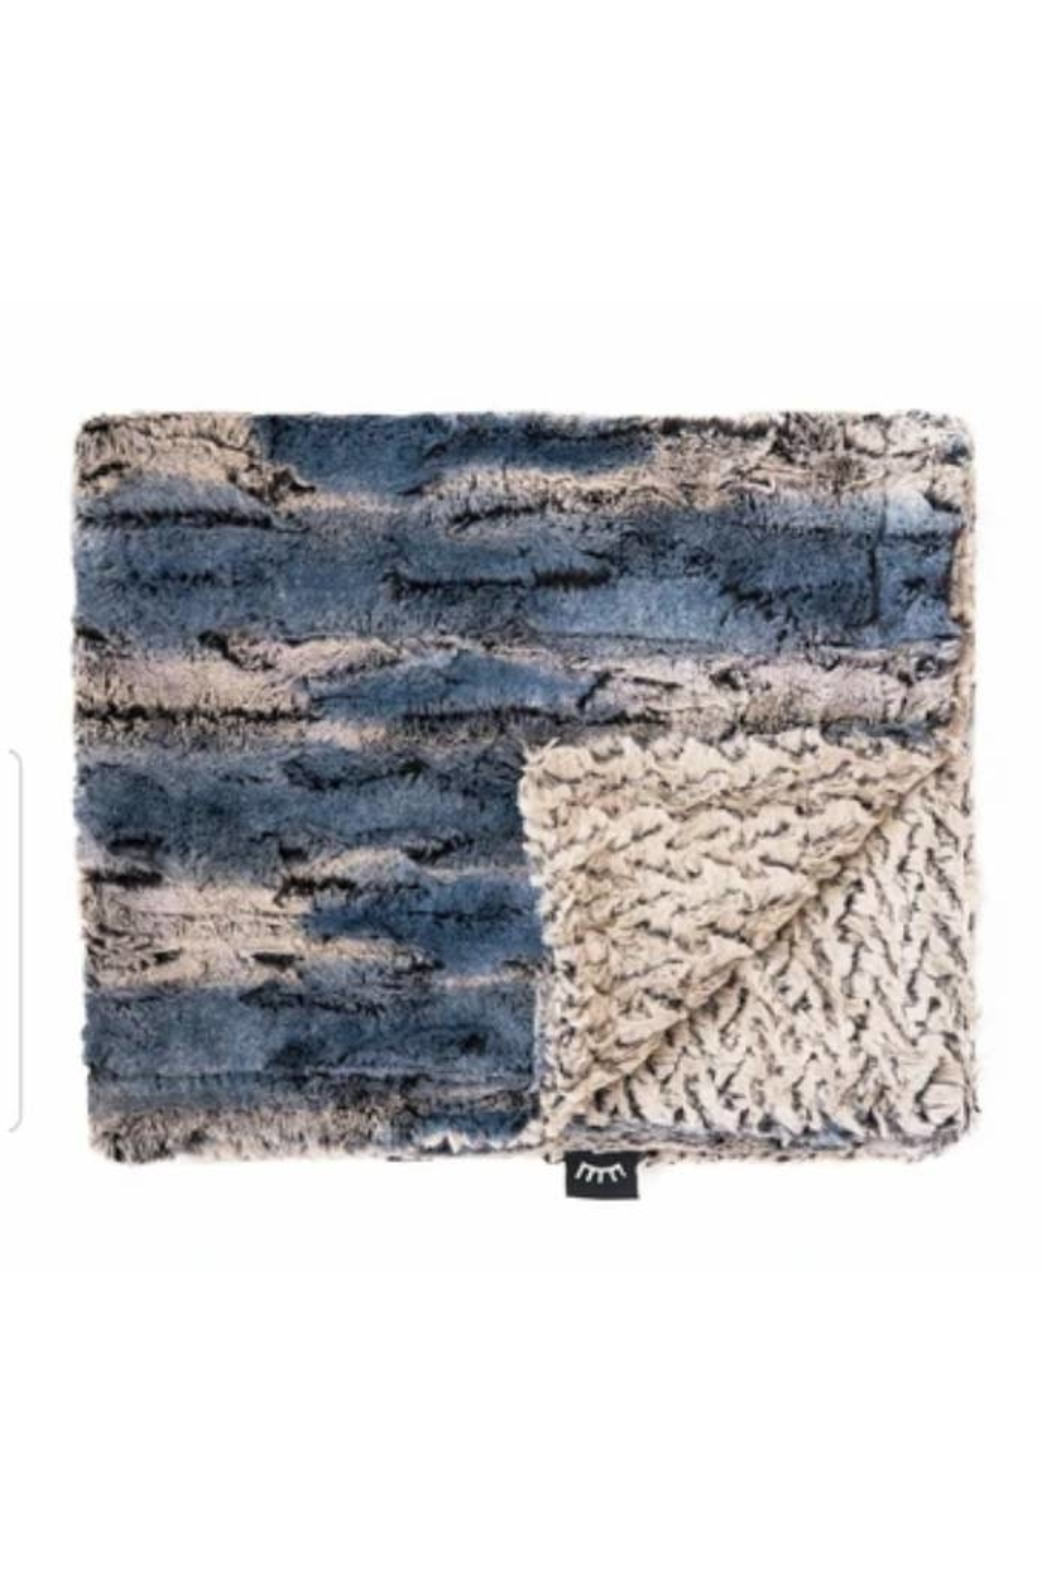 Winx+Blinx Ombre Navy Mini Minky Blanket (13 X 12.5 Inches)for Newborn Baby Boys Girls Winter Swaddle - Main Image